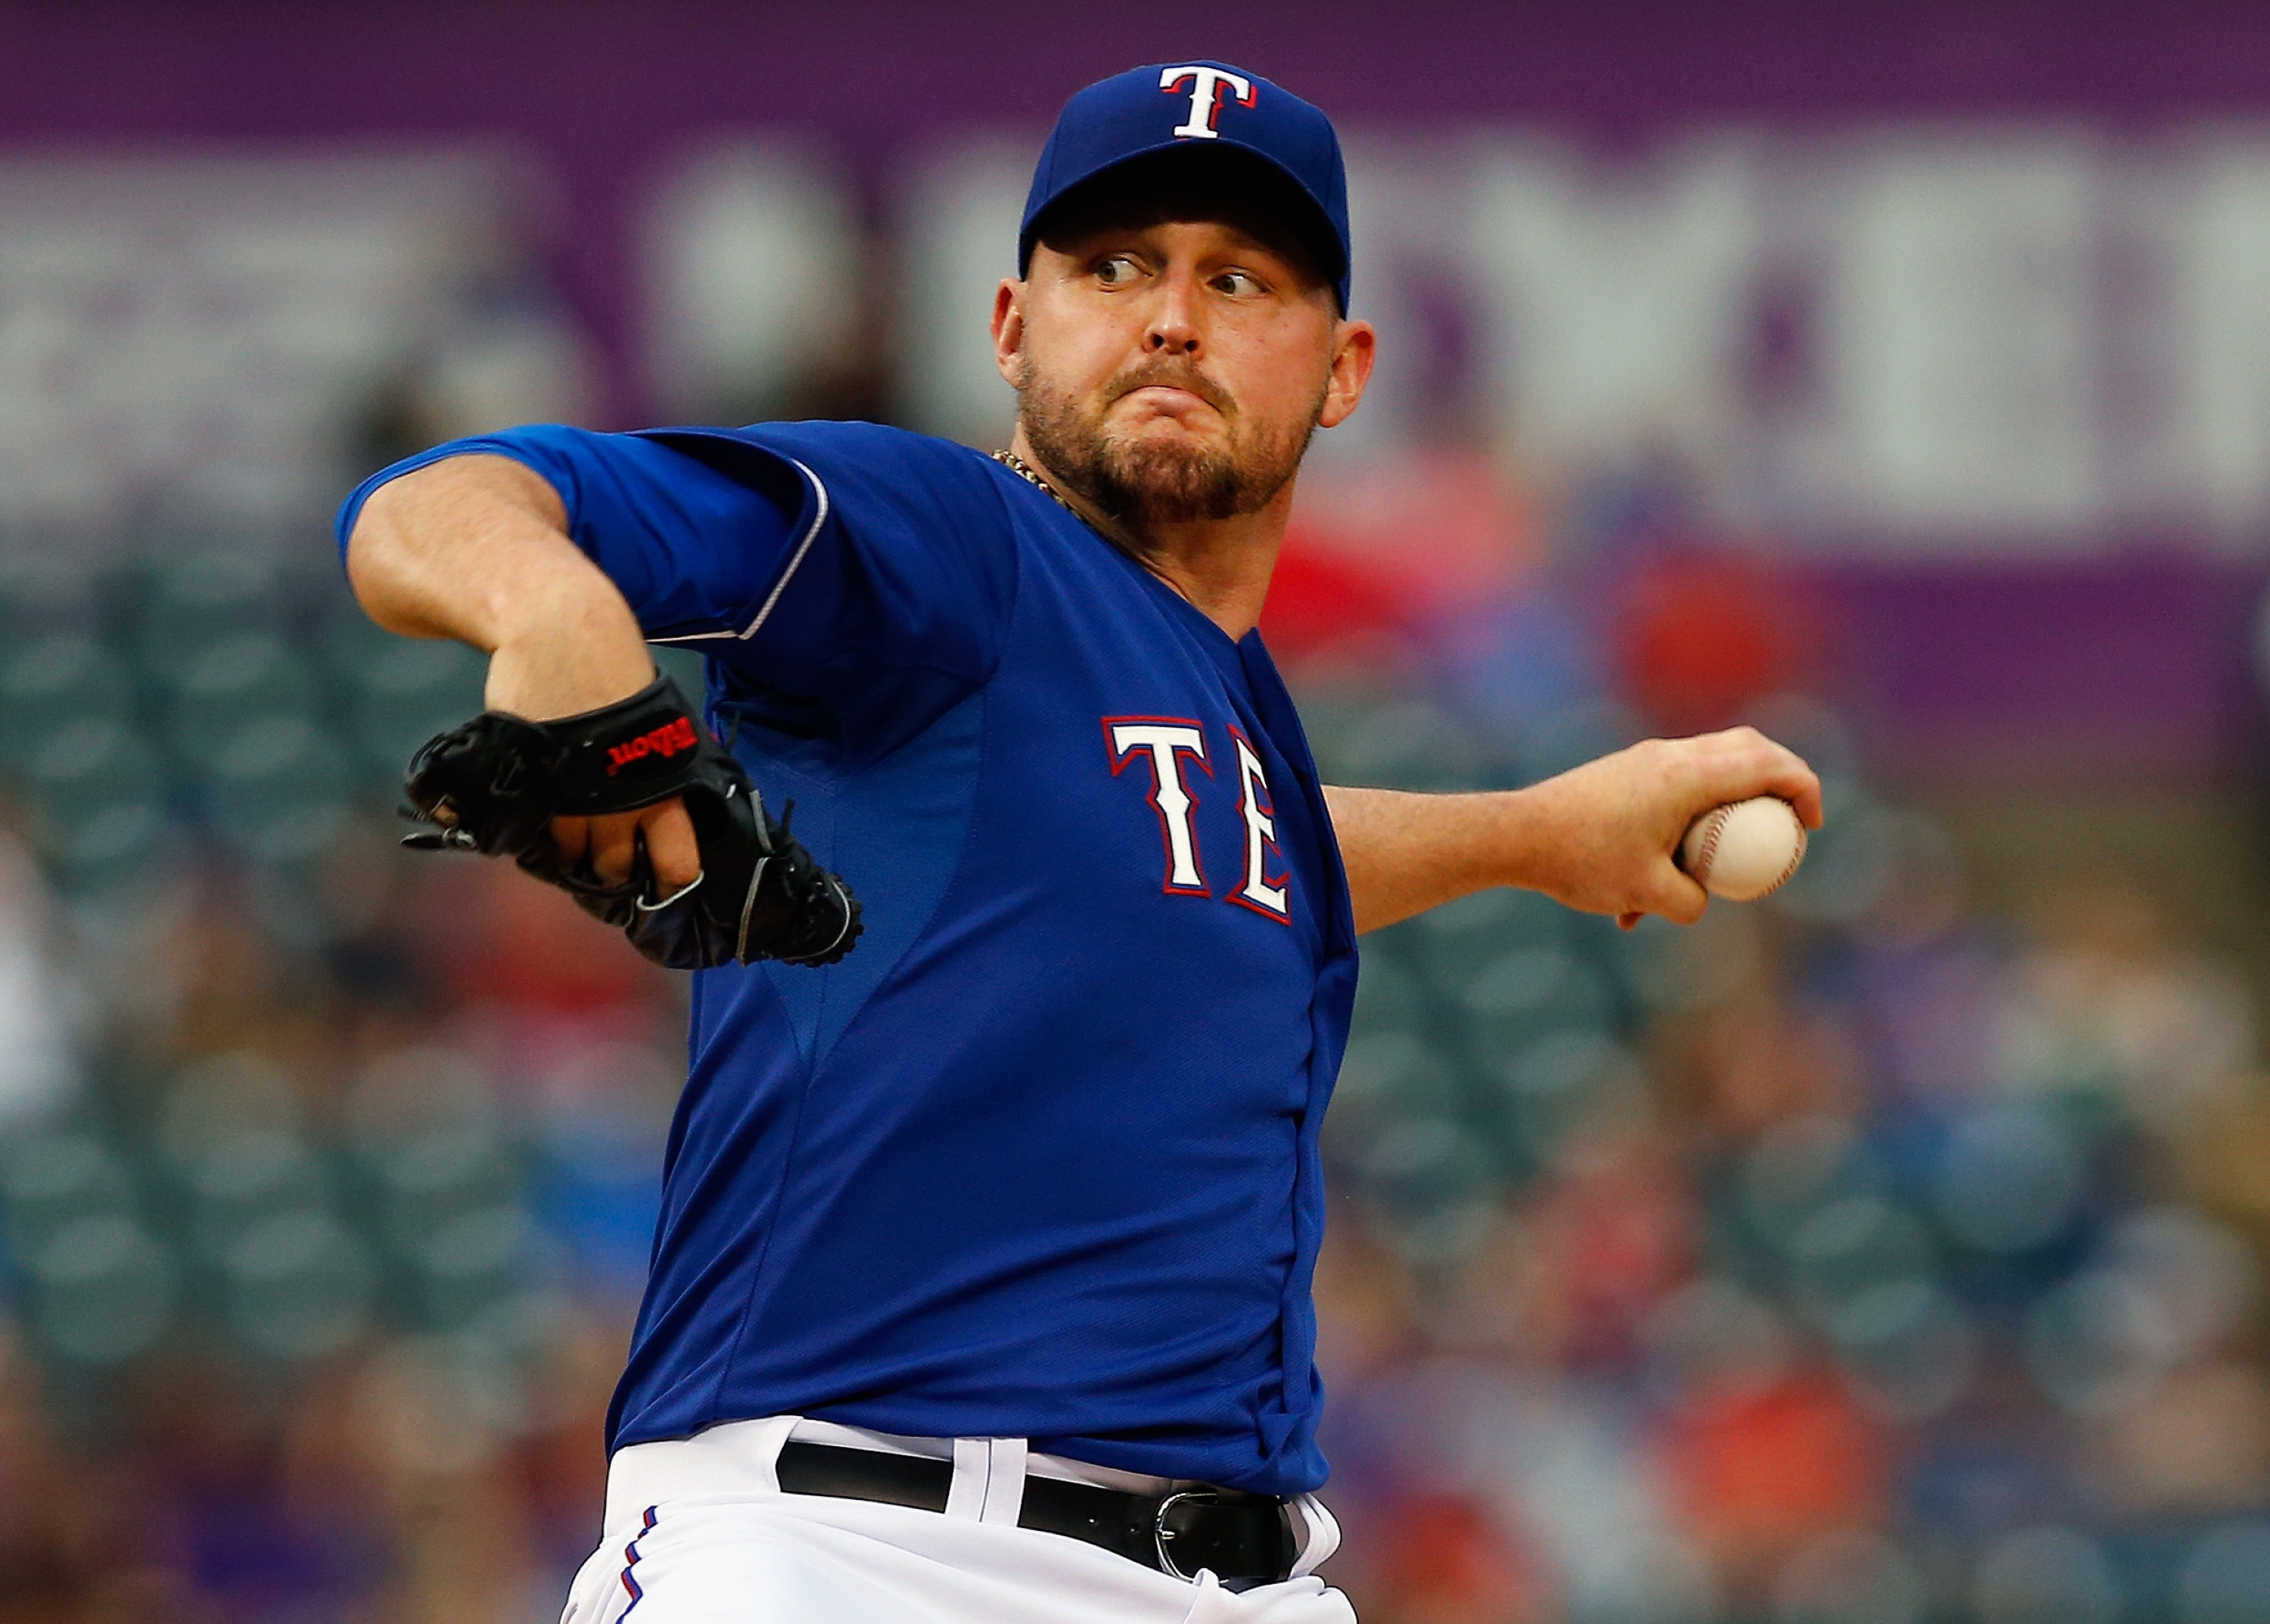 Rangers lose Martin Perez and Matt Harrison to potential long-t…